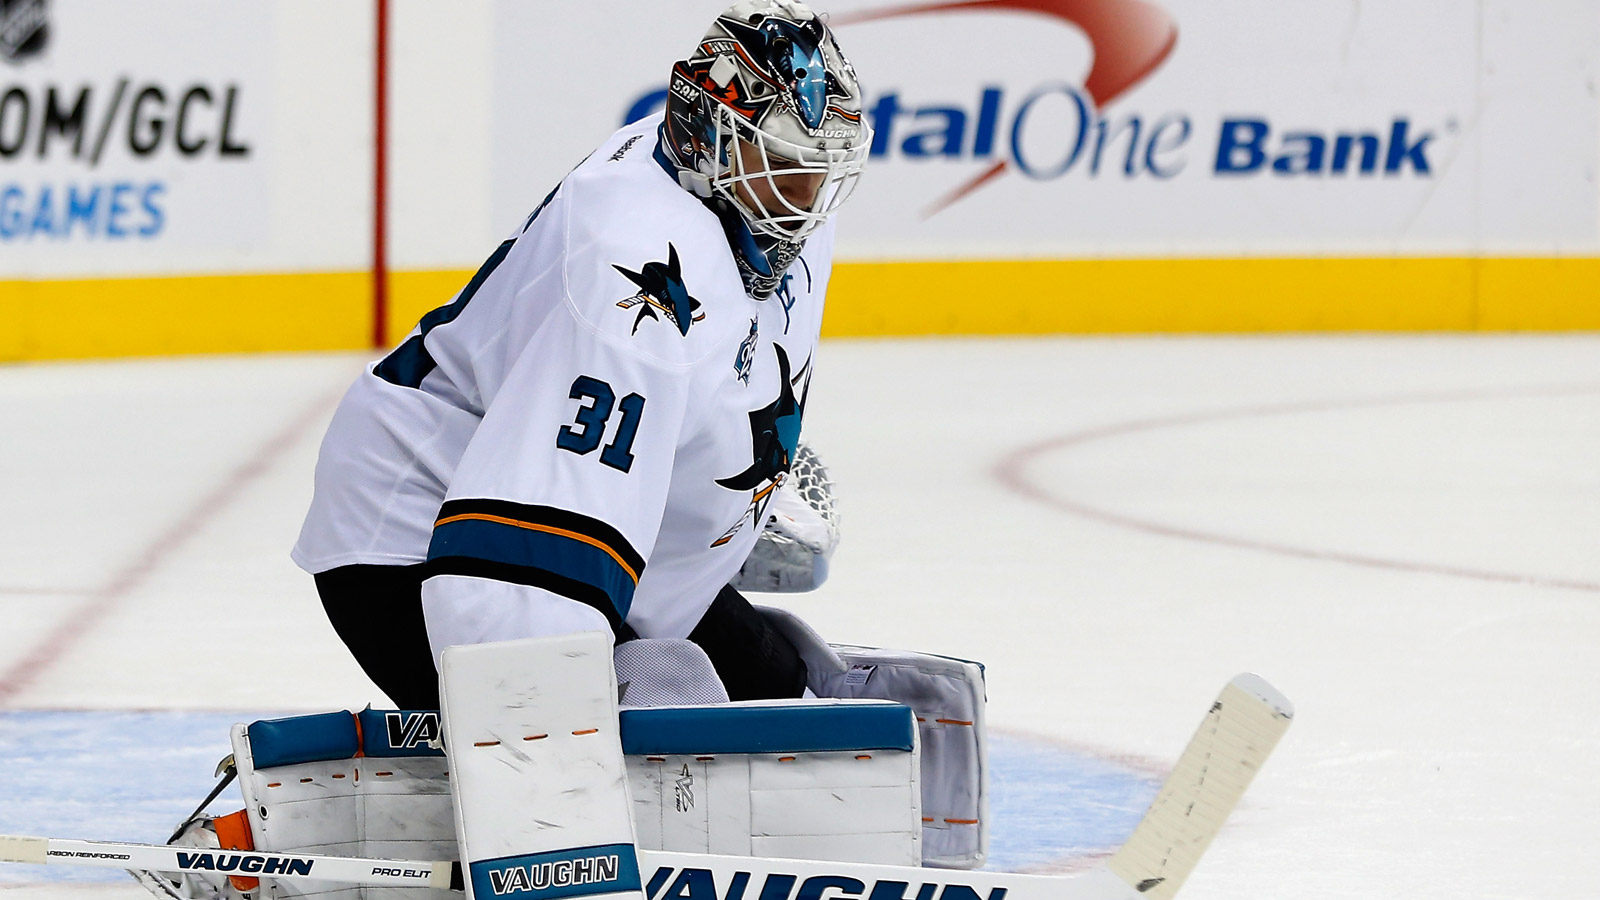 Jones has second straight shutout, Sharks top Caps, 5-0